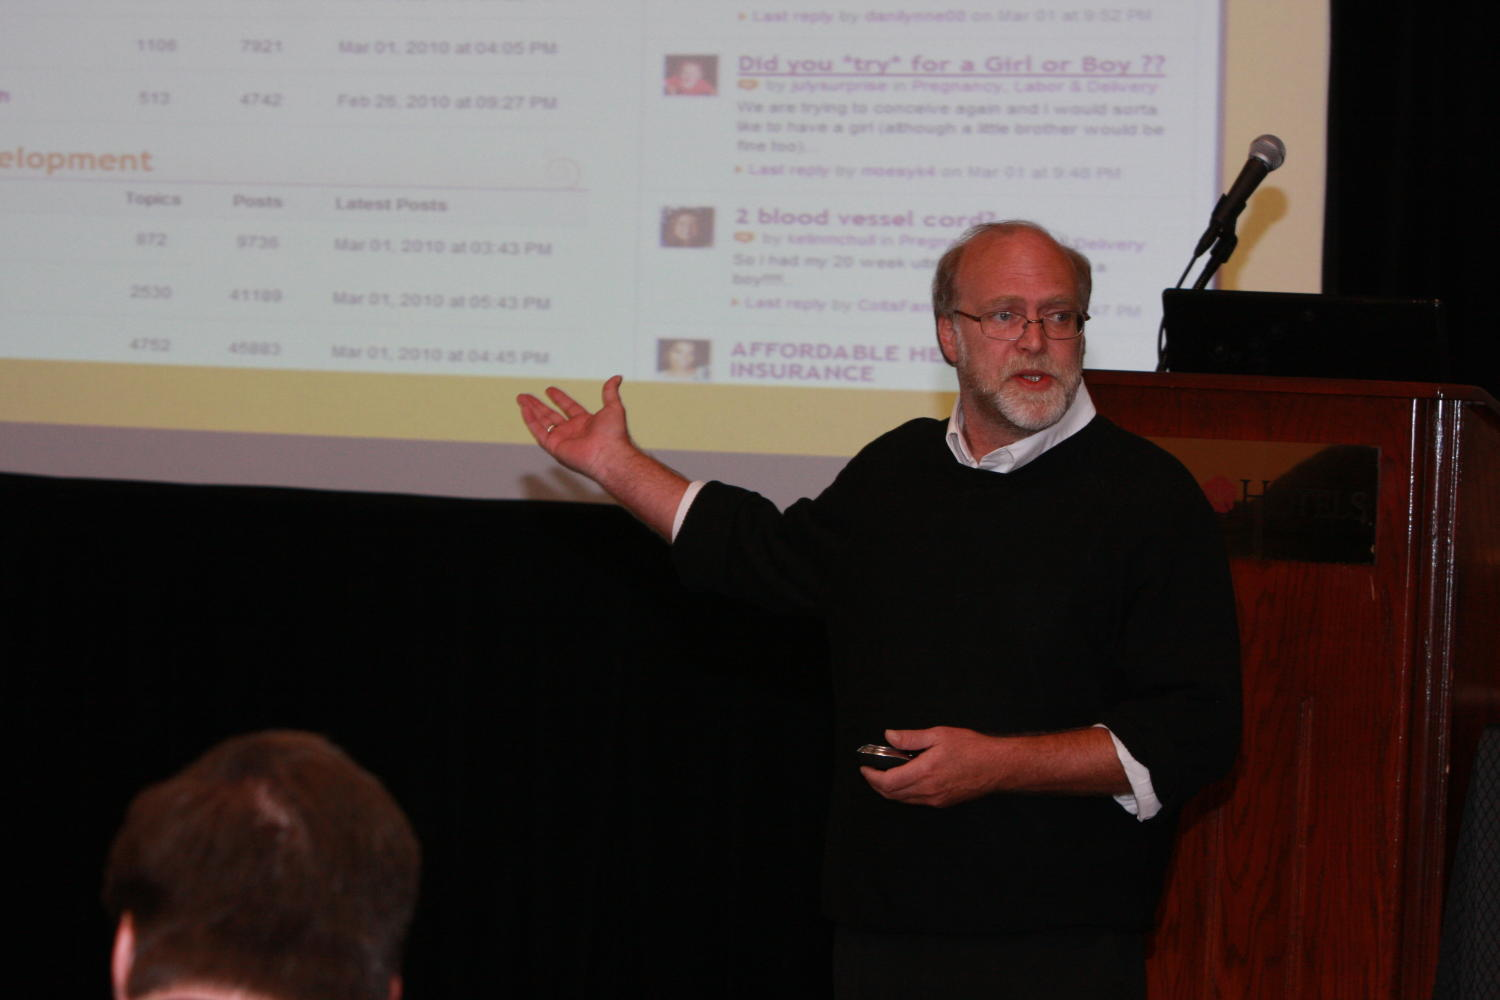 [Photograph of man giving a presentation at TDNA conference], Photograph of an unidentified man seen standing in front of a podium and giving a powerpoint presentation during the 2010 Texas Daily Newspaper Association annual meeting held in Houston, Texas.,